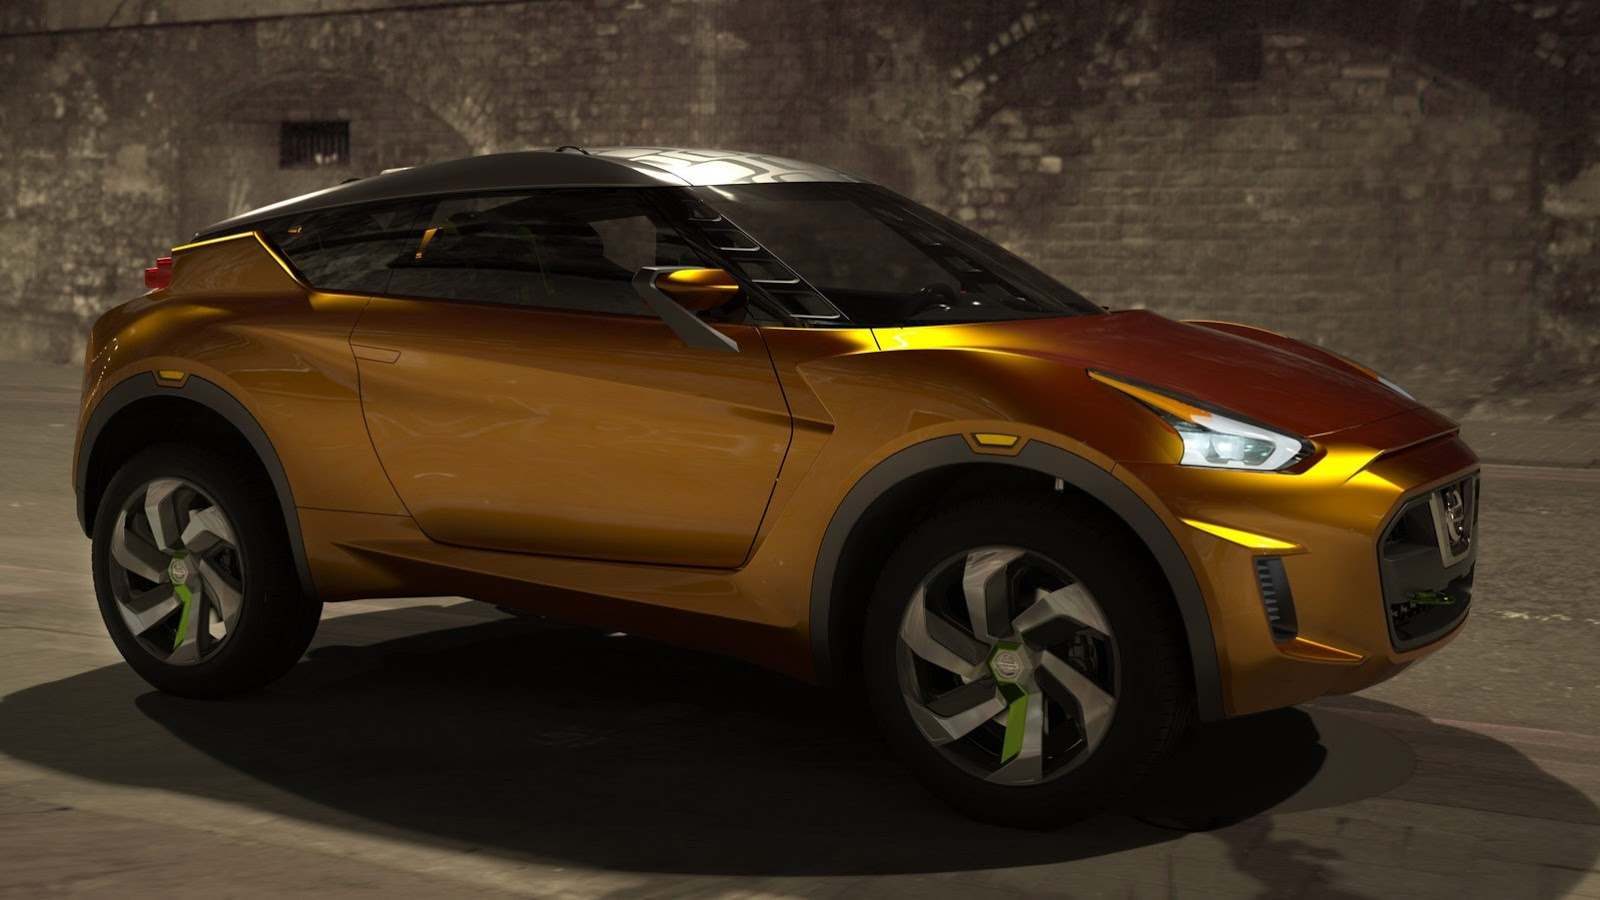 Nissan-Extreme-Concept-CUV-1[6]